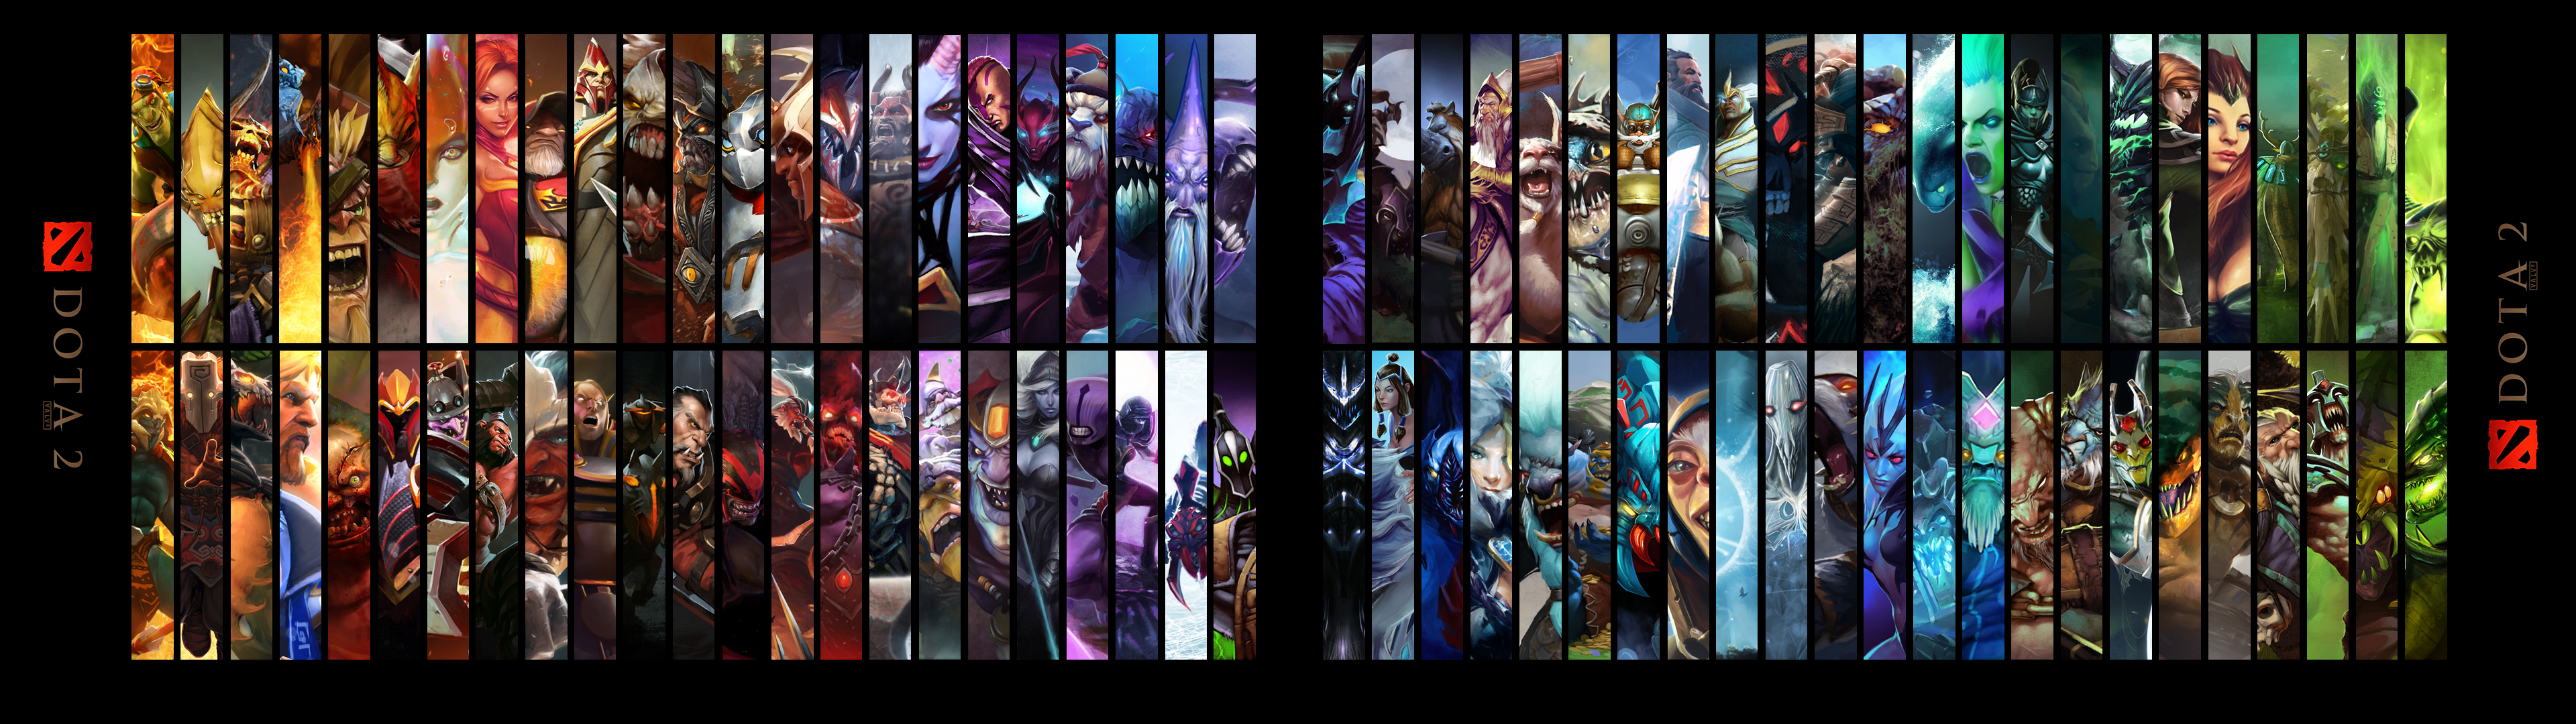 Dota 2 Heroes Dual Monitors Wallpaper Dota 2 HD Wallpapers 3840x1080